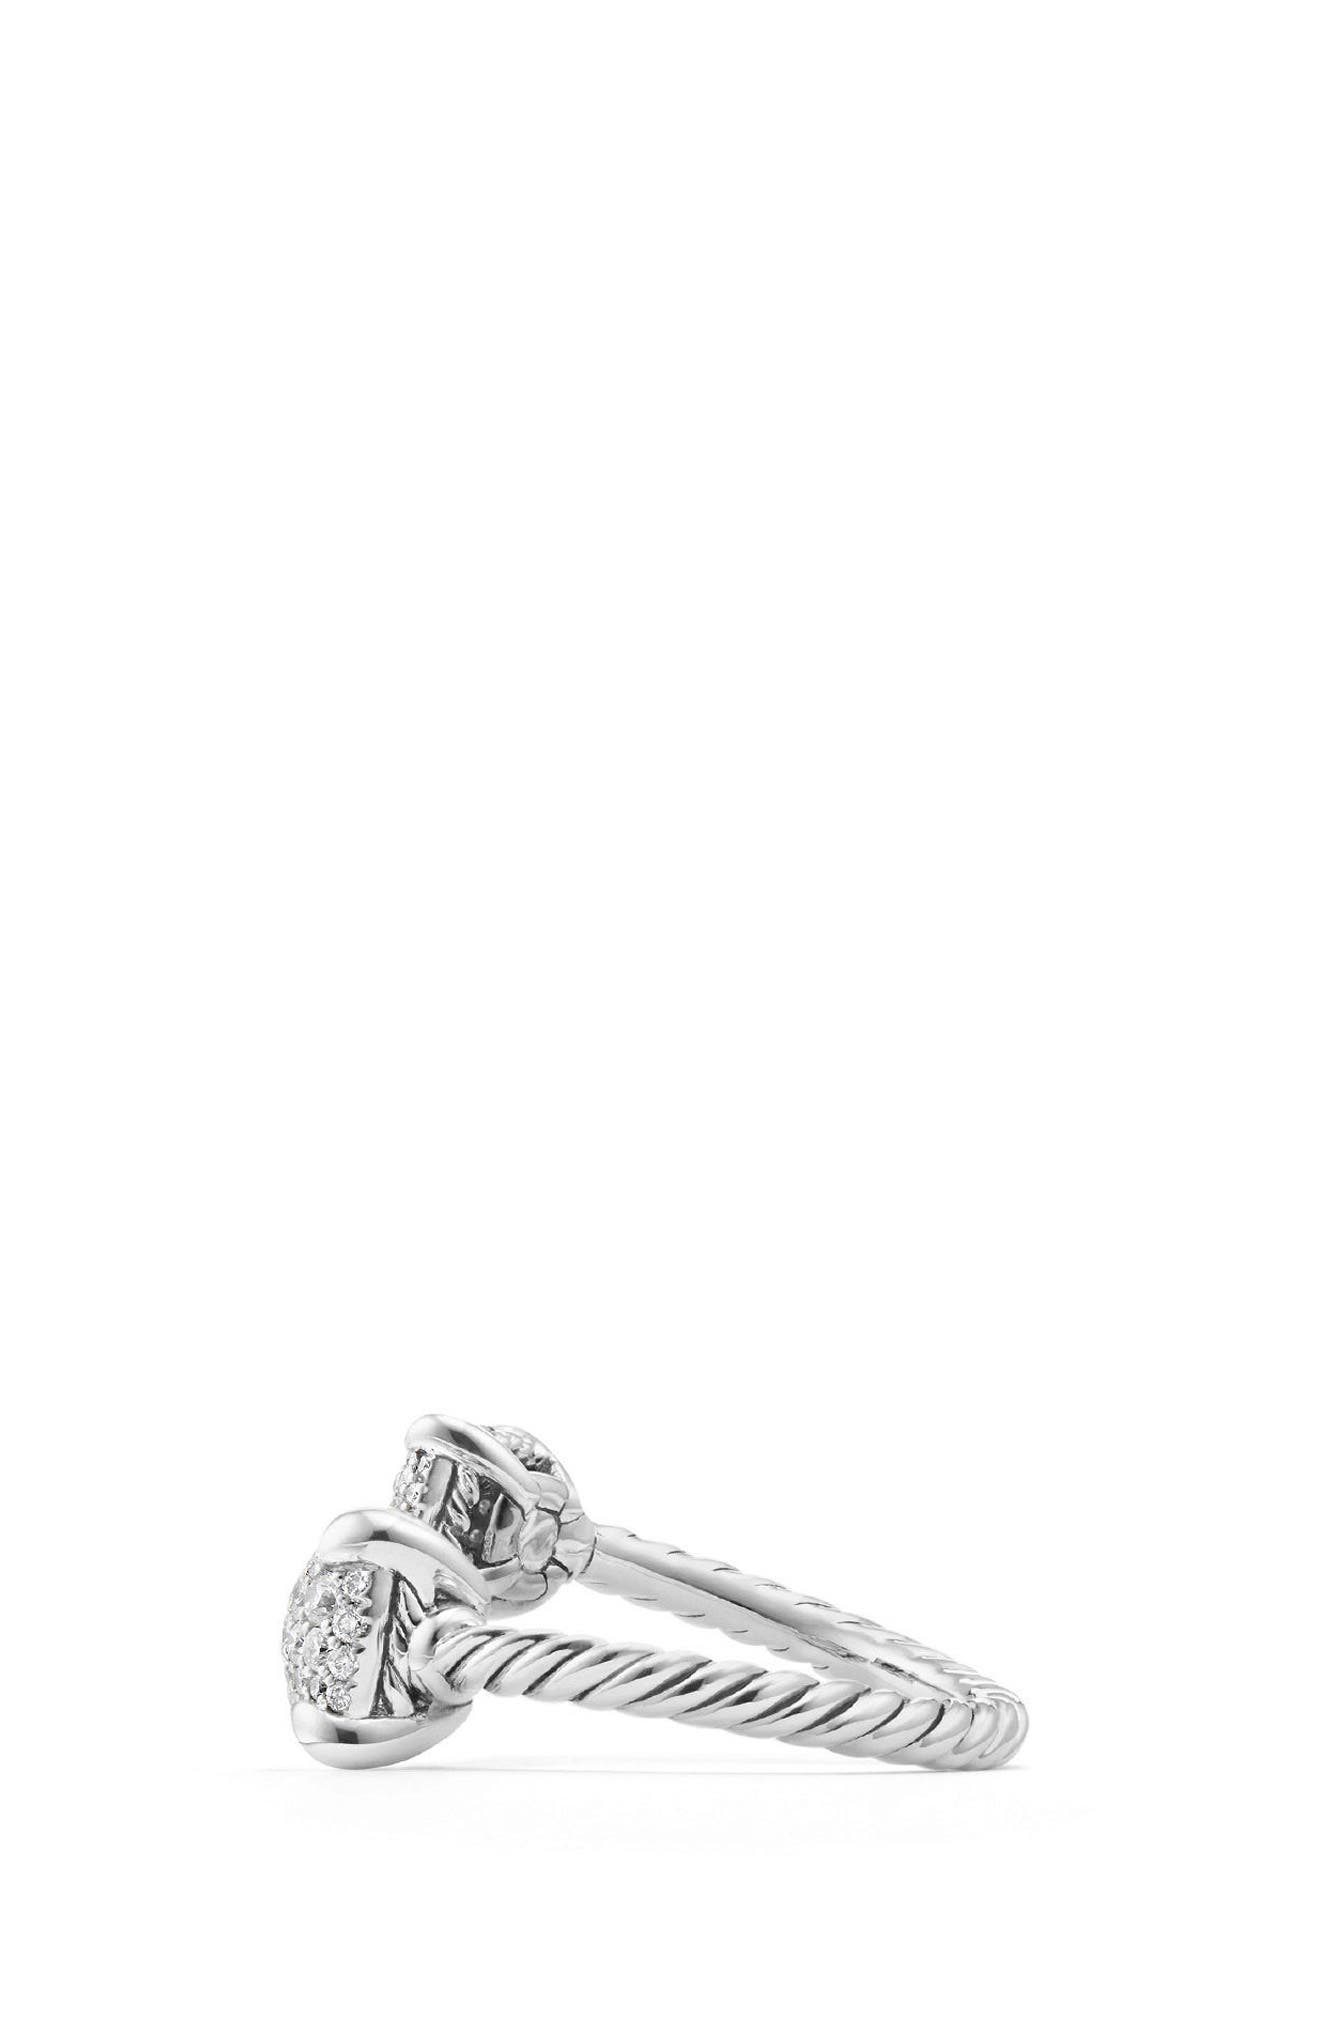 Châtelaine Bypass Ring with Diamonds,                             Alternate thumbnail 2, color,                             SILVER